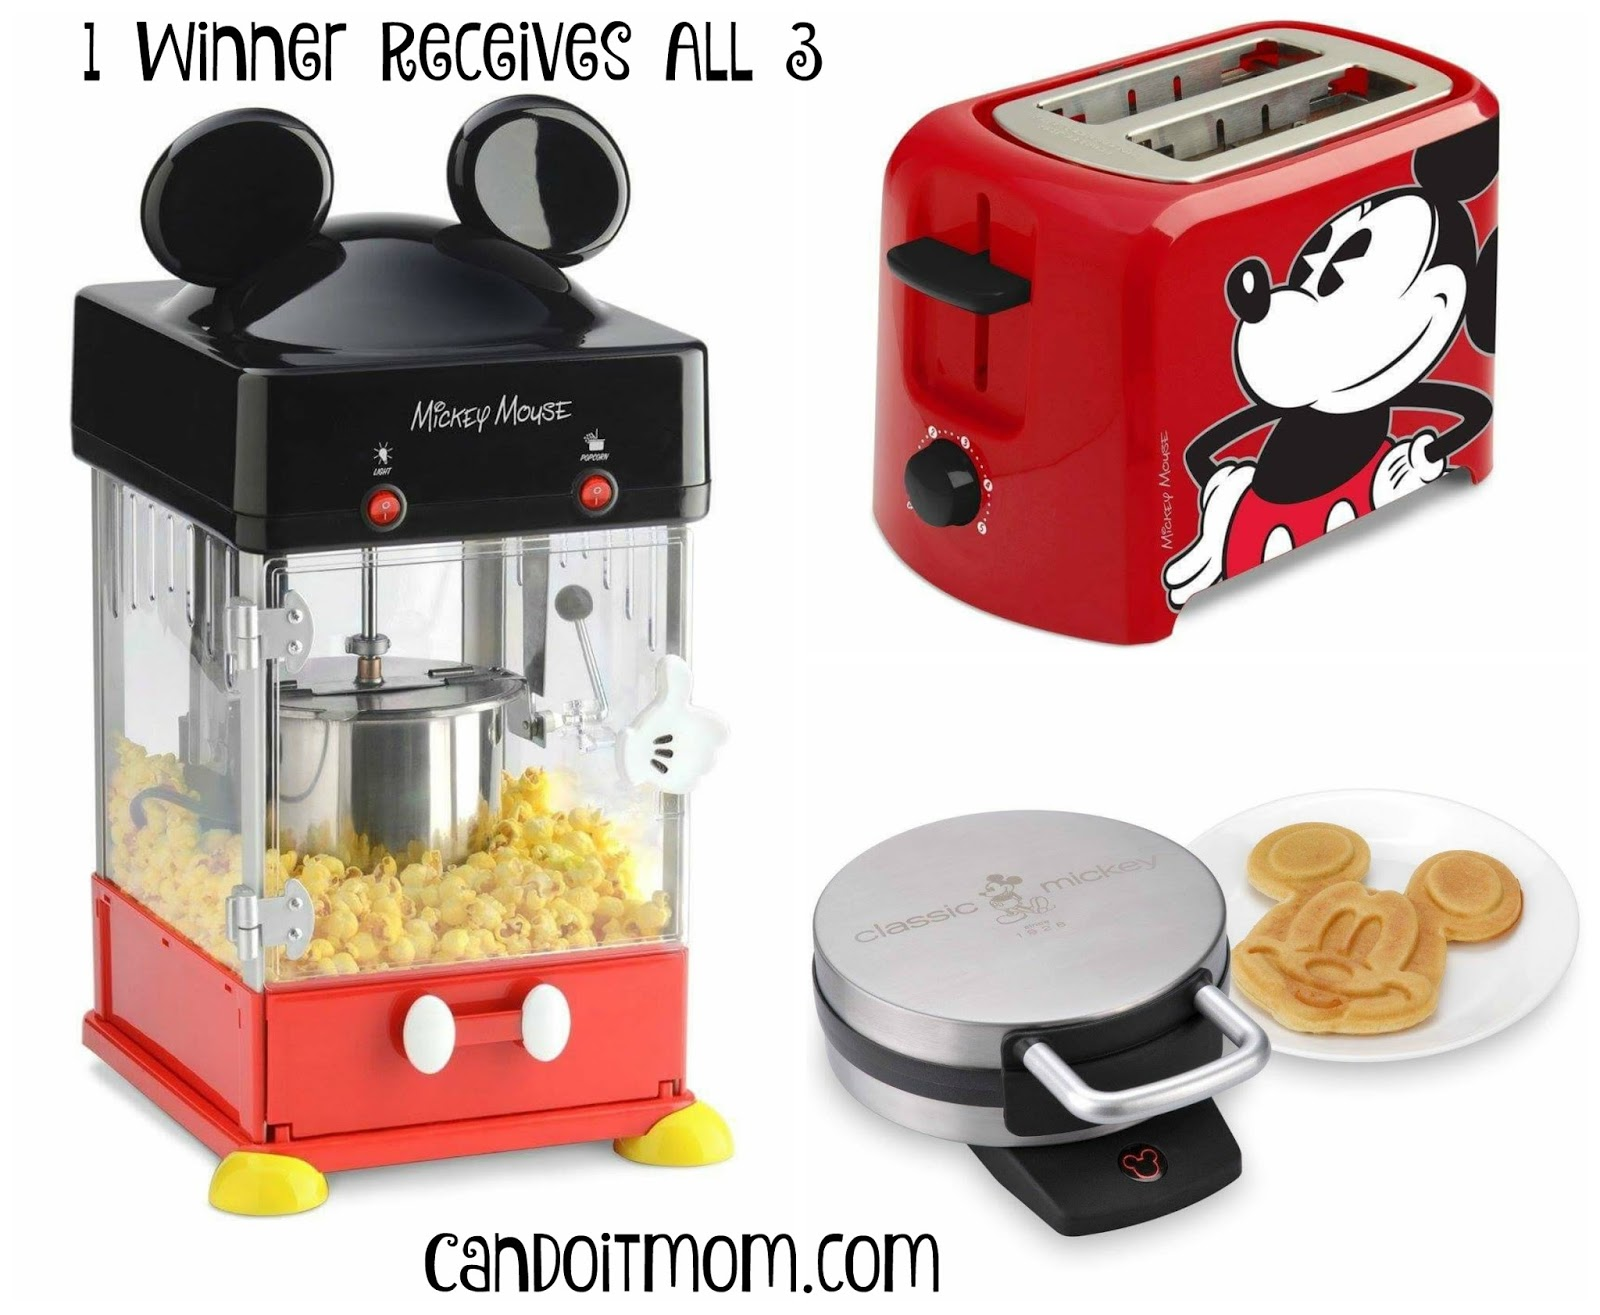 Mickey Mouse Kitchen Appliances Candoitmom Blog Giveaway Add Disney Magic To Your Kitchen